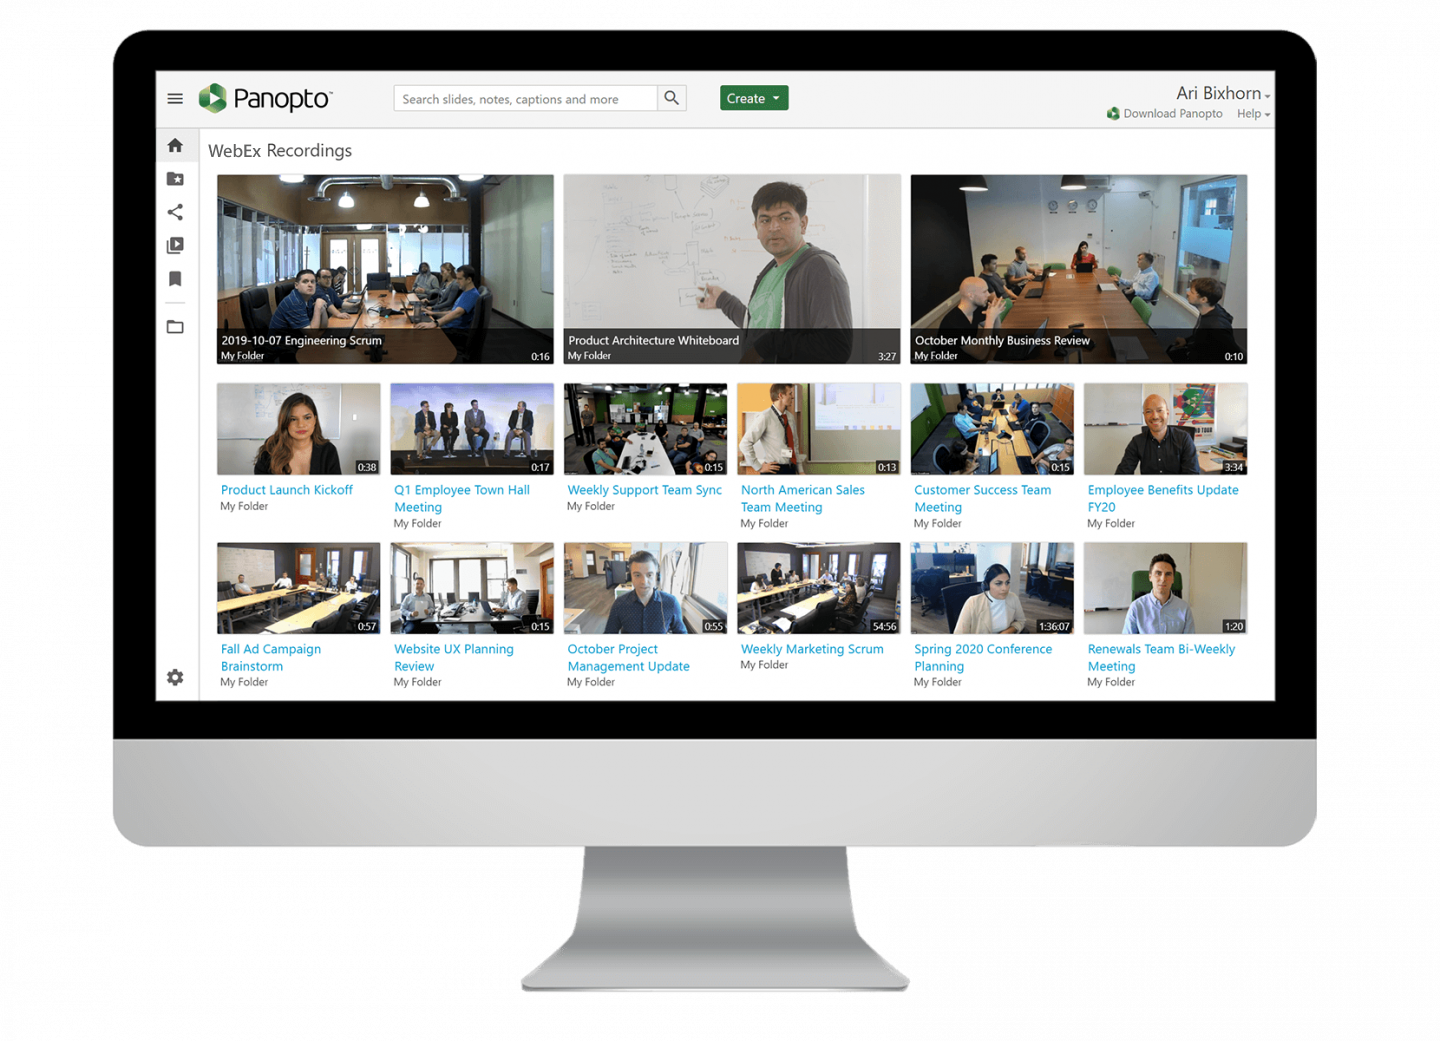 Expand the reach of your internal communications with Panopto's video communications latform